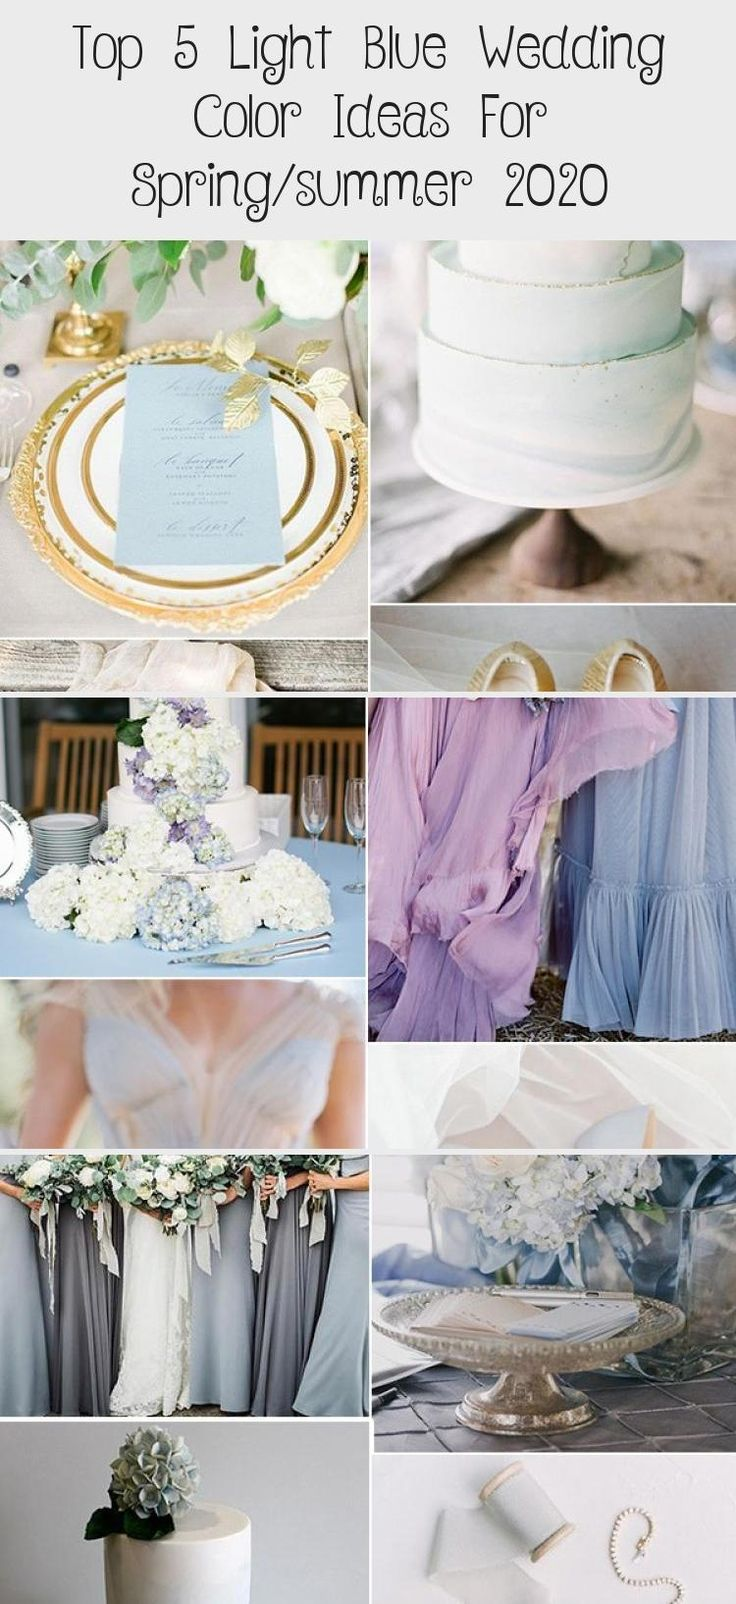 trending light blue and greenery wedding color ideas for spring summer 2019 #weddingcolors #weddingideas #blueweddings #Blushgardenwedding #gardenweddingNight #gardenweddingTent #gardenweddingChairs #gardenweddingPhotography